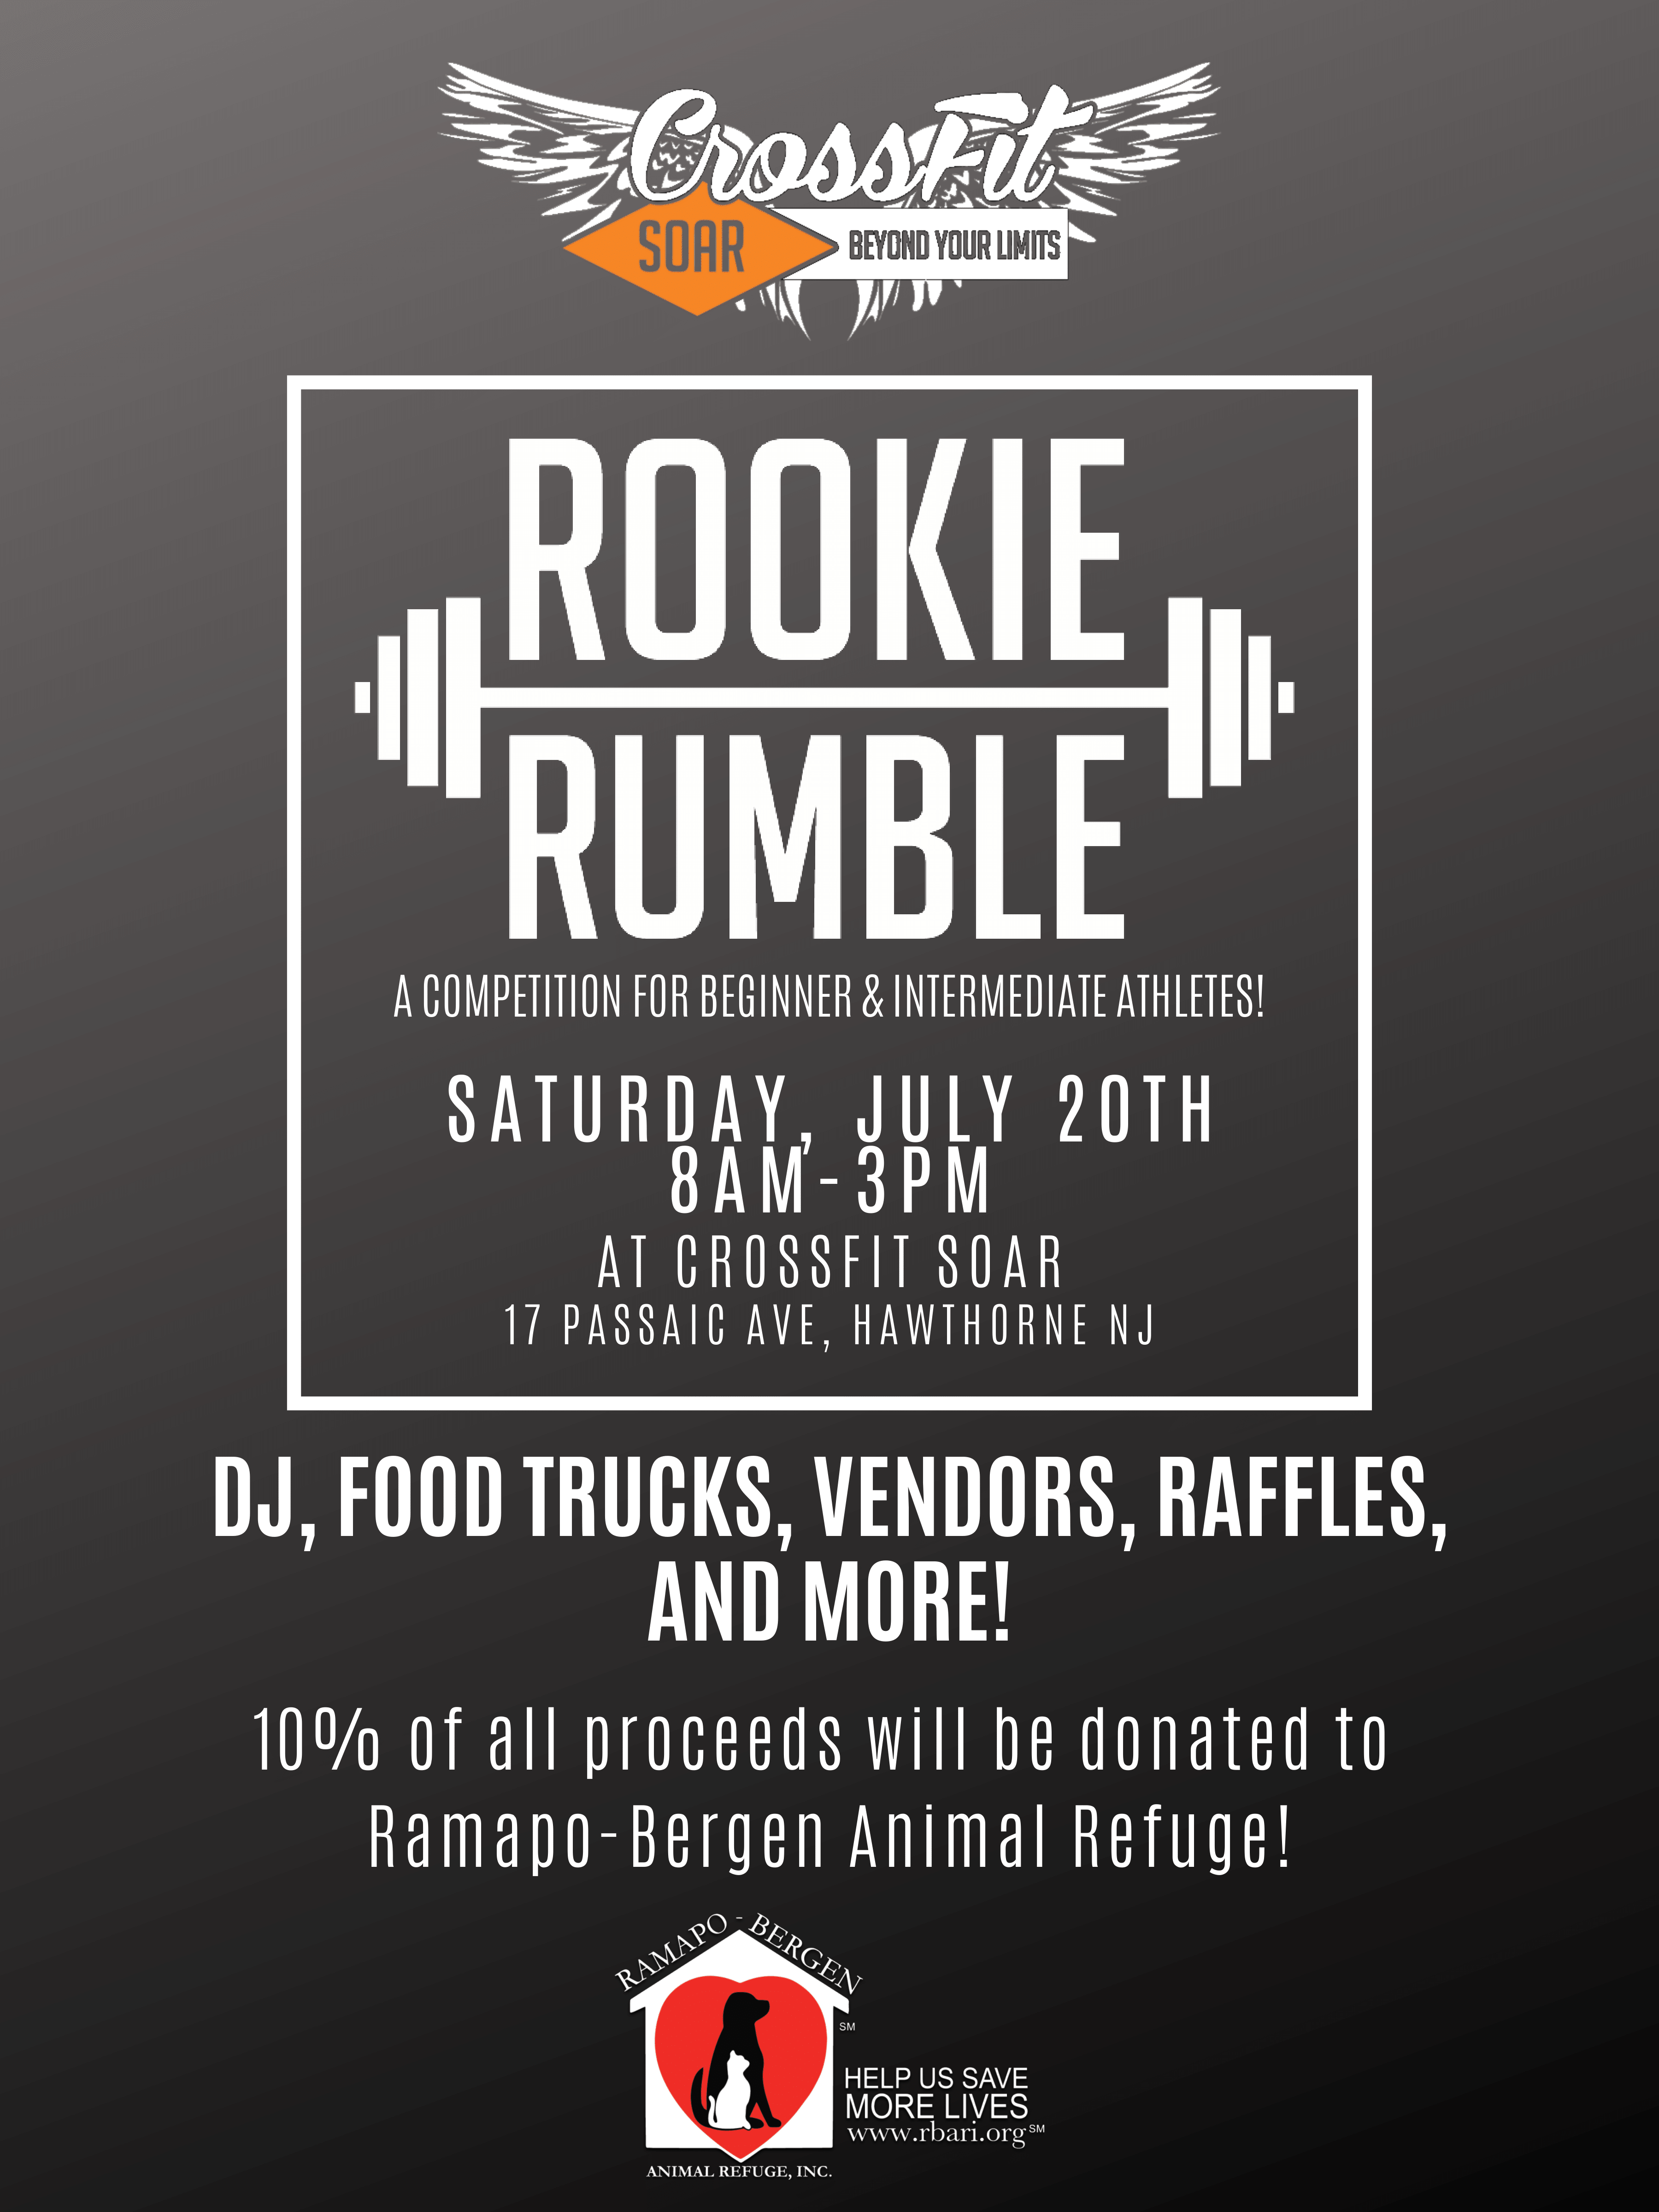 Crossfit Soar's Rookie Rumble